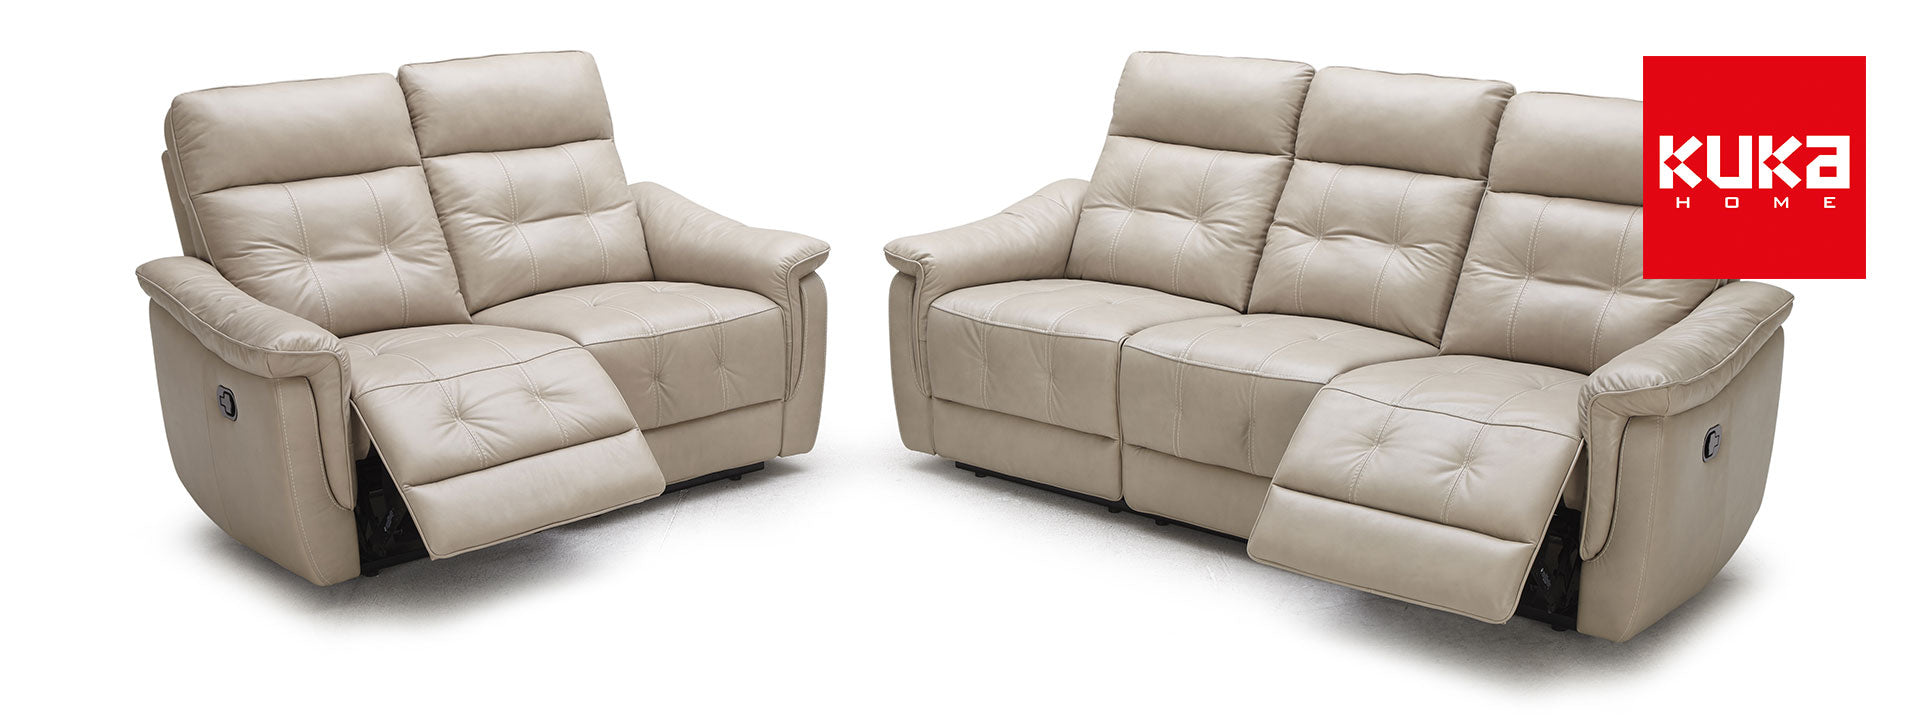 Kuka sofa reviews refil sofa for K furniture reviews